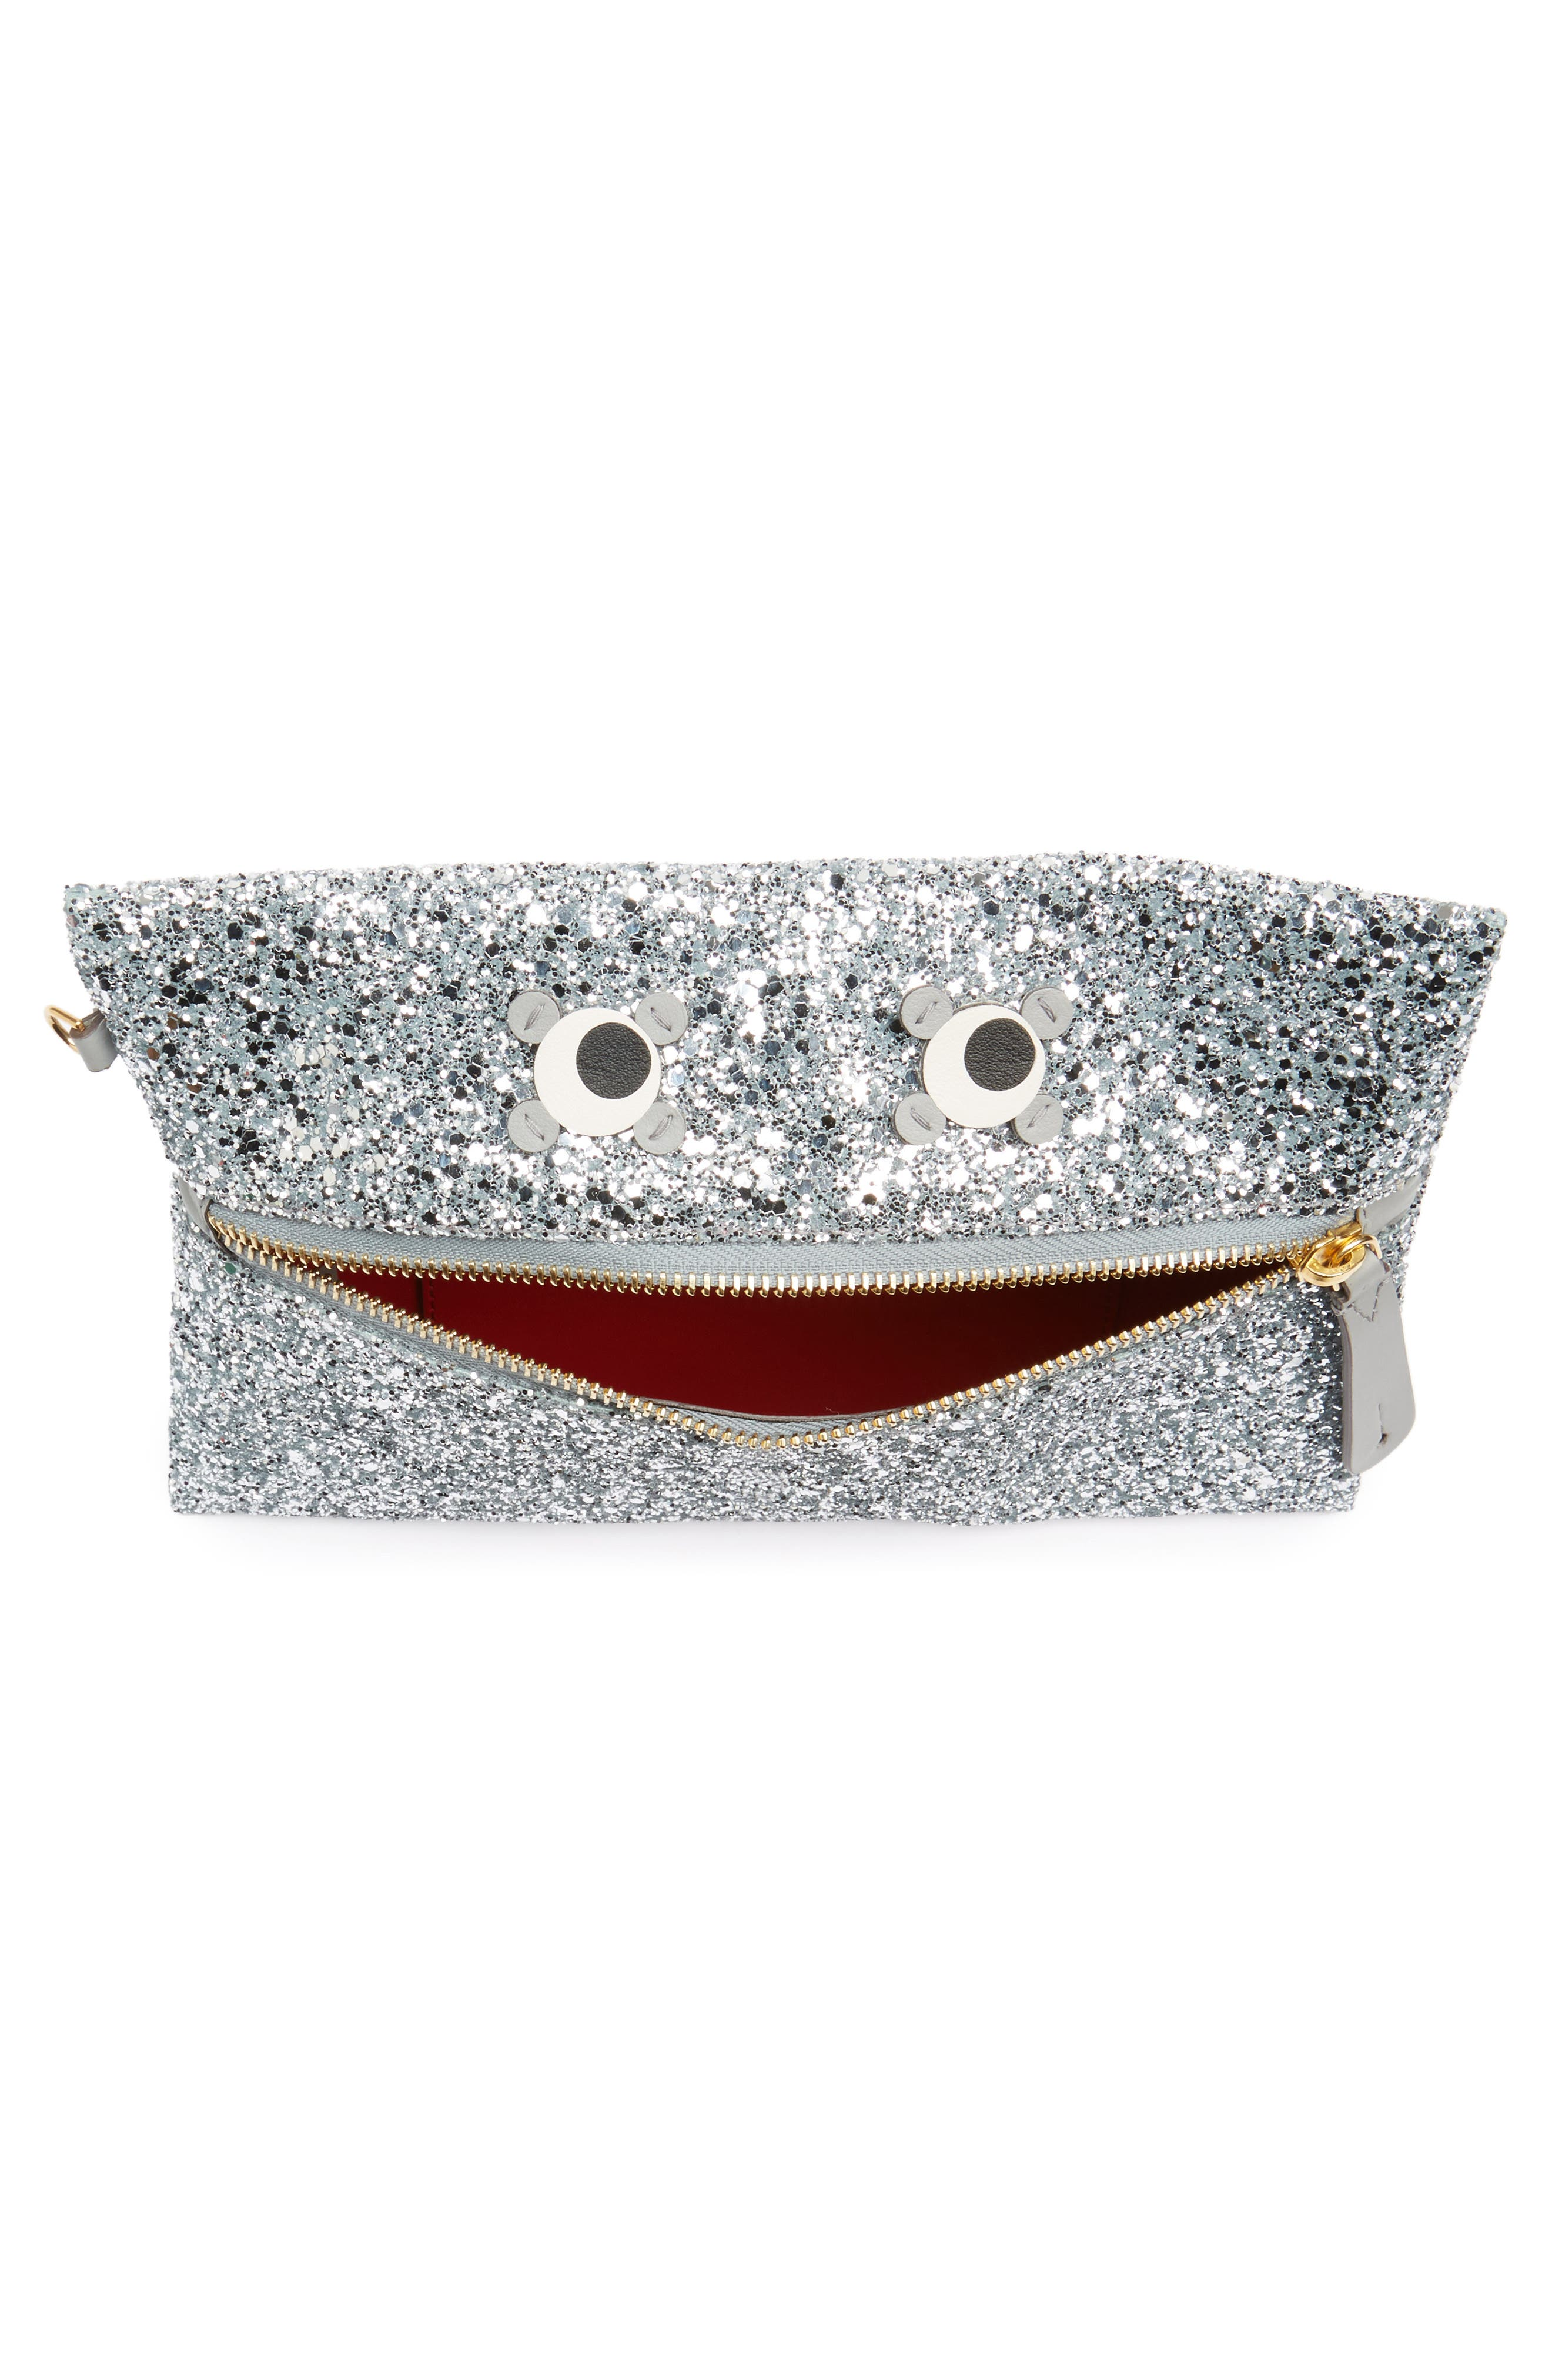 Eyes Circulus Glitter Pouch,                             Alternate thumbnail 4, color,                             Silver